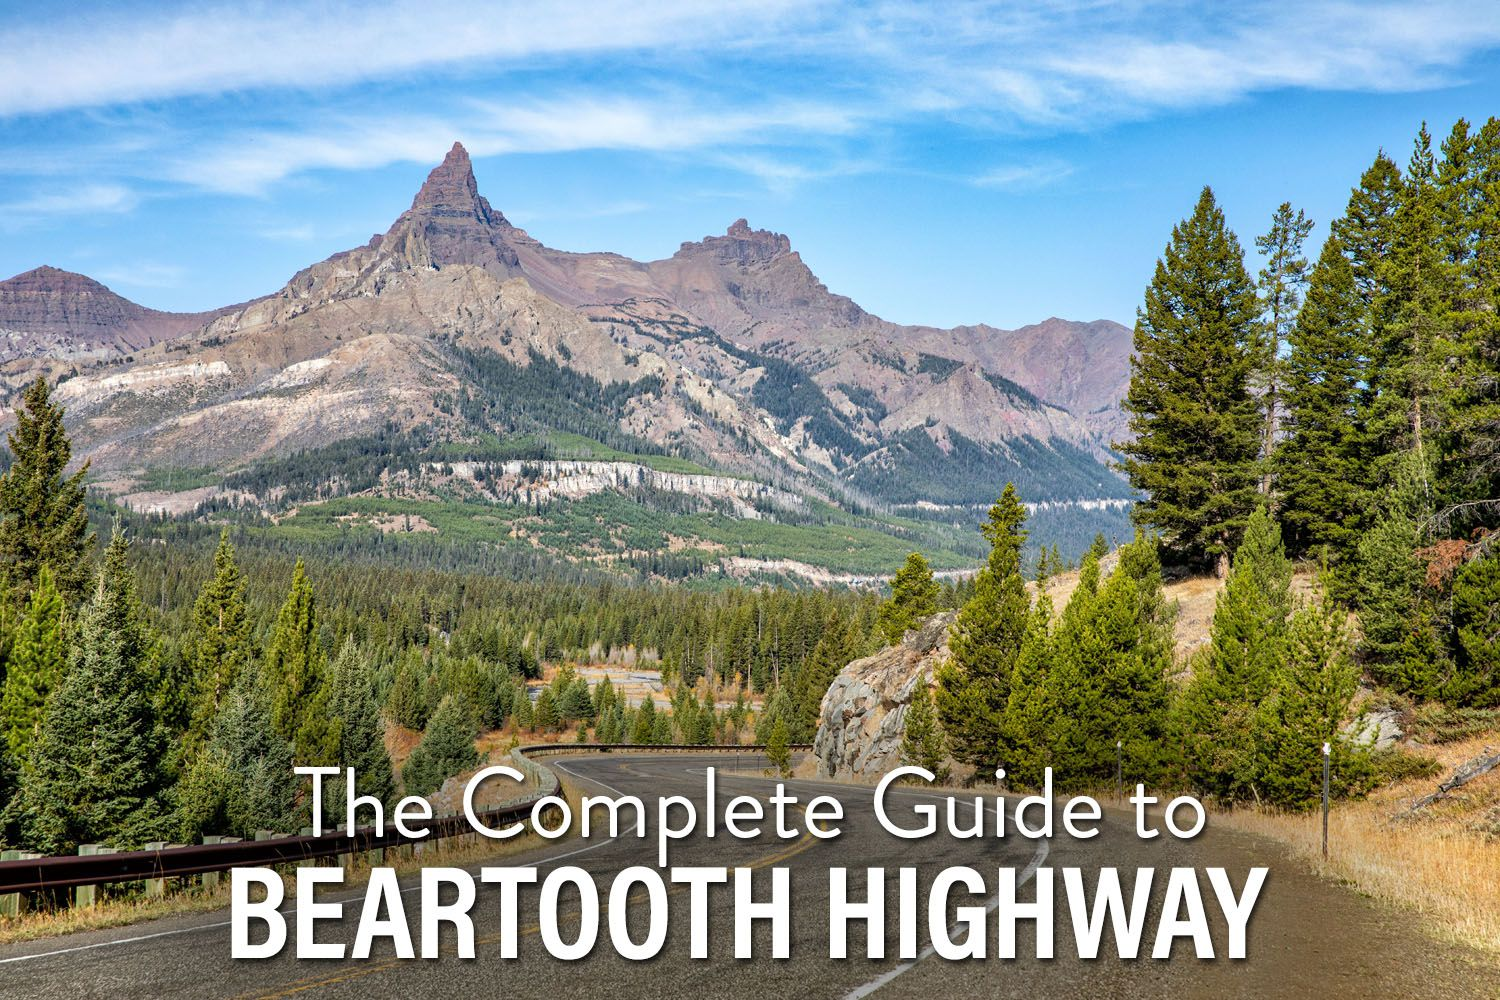 Guide to Beartooth Highway